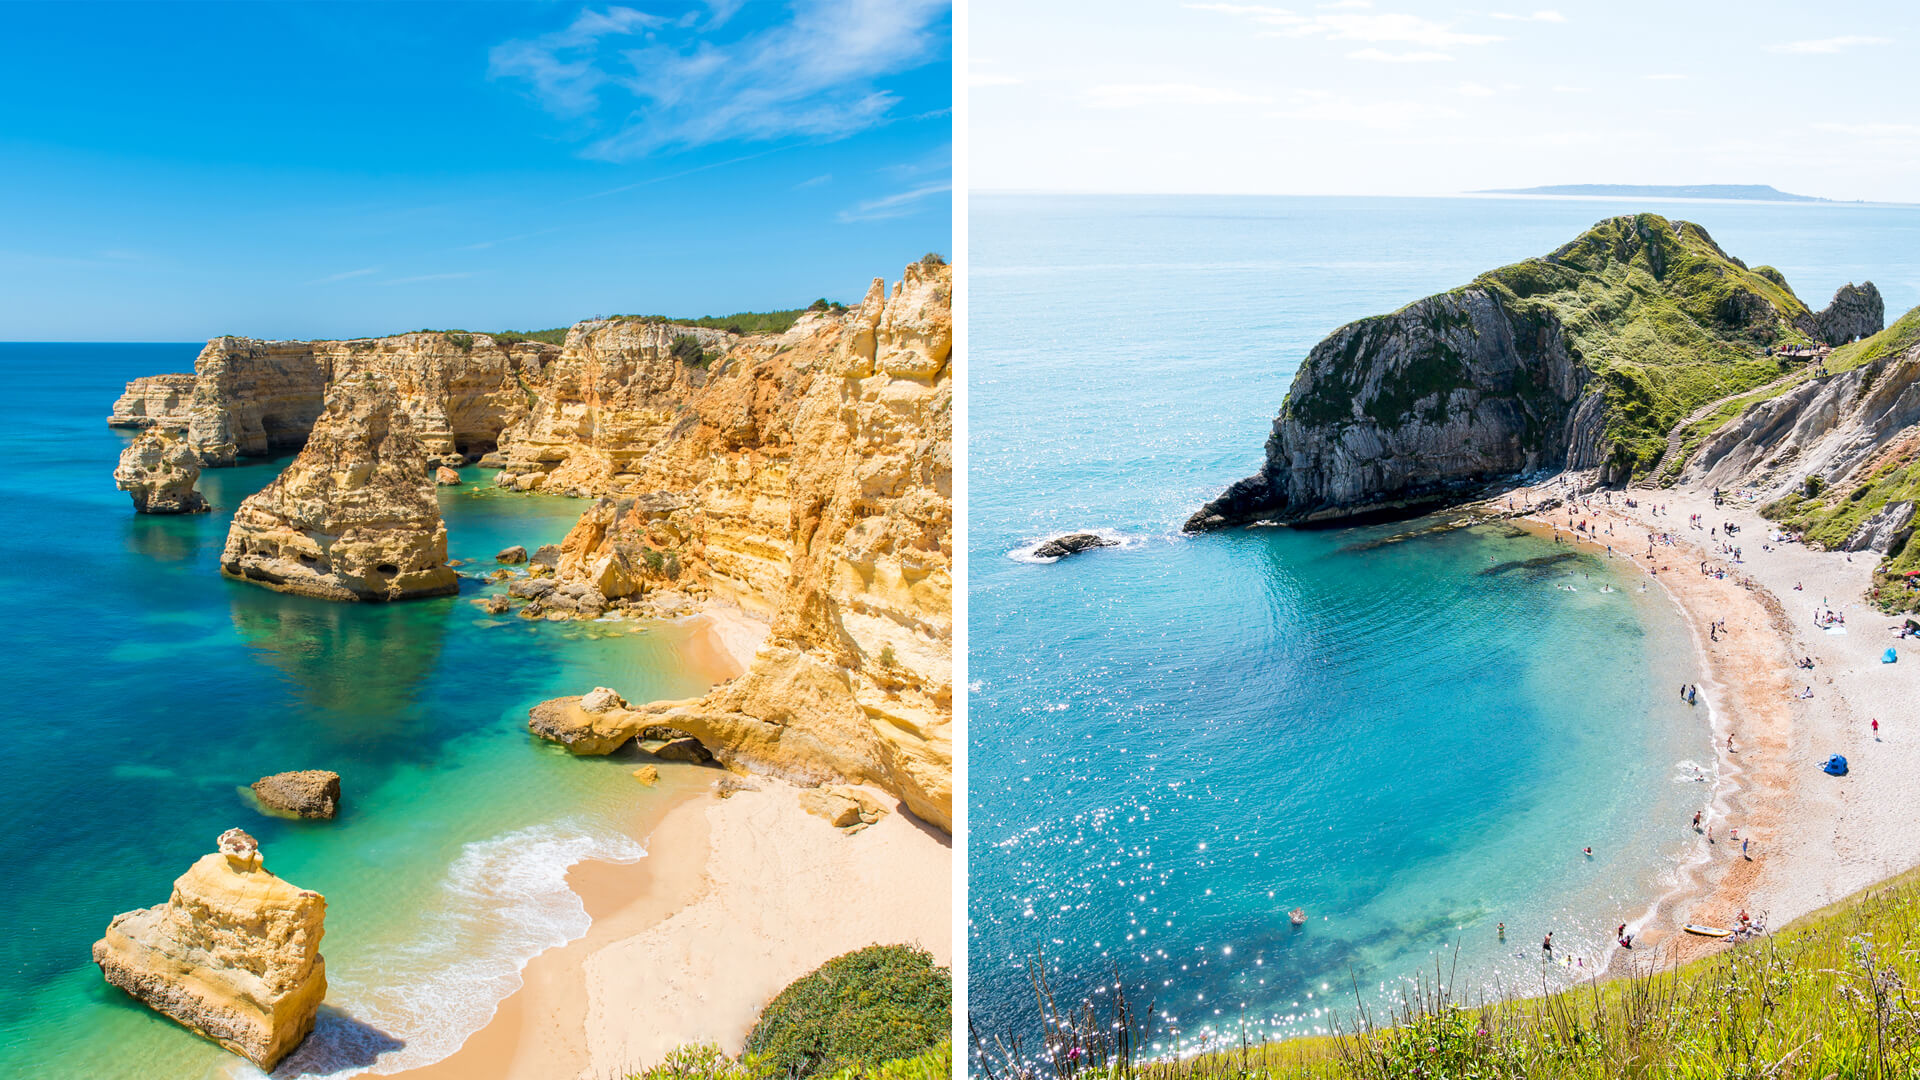 Portugal's Atlantic Coast vs. South England's Jurassic Coast